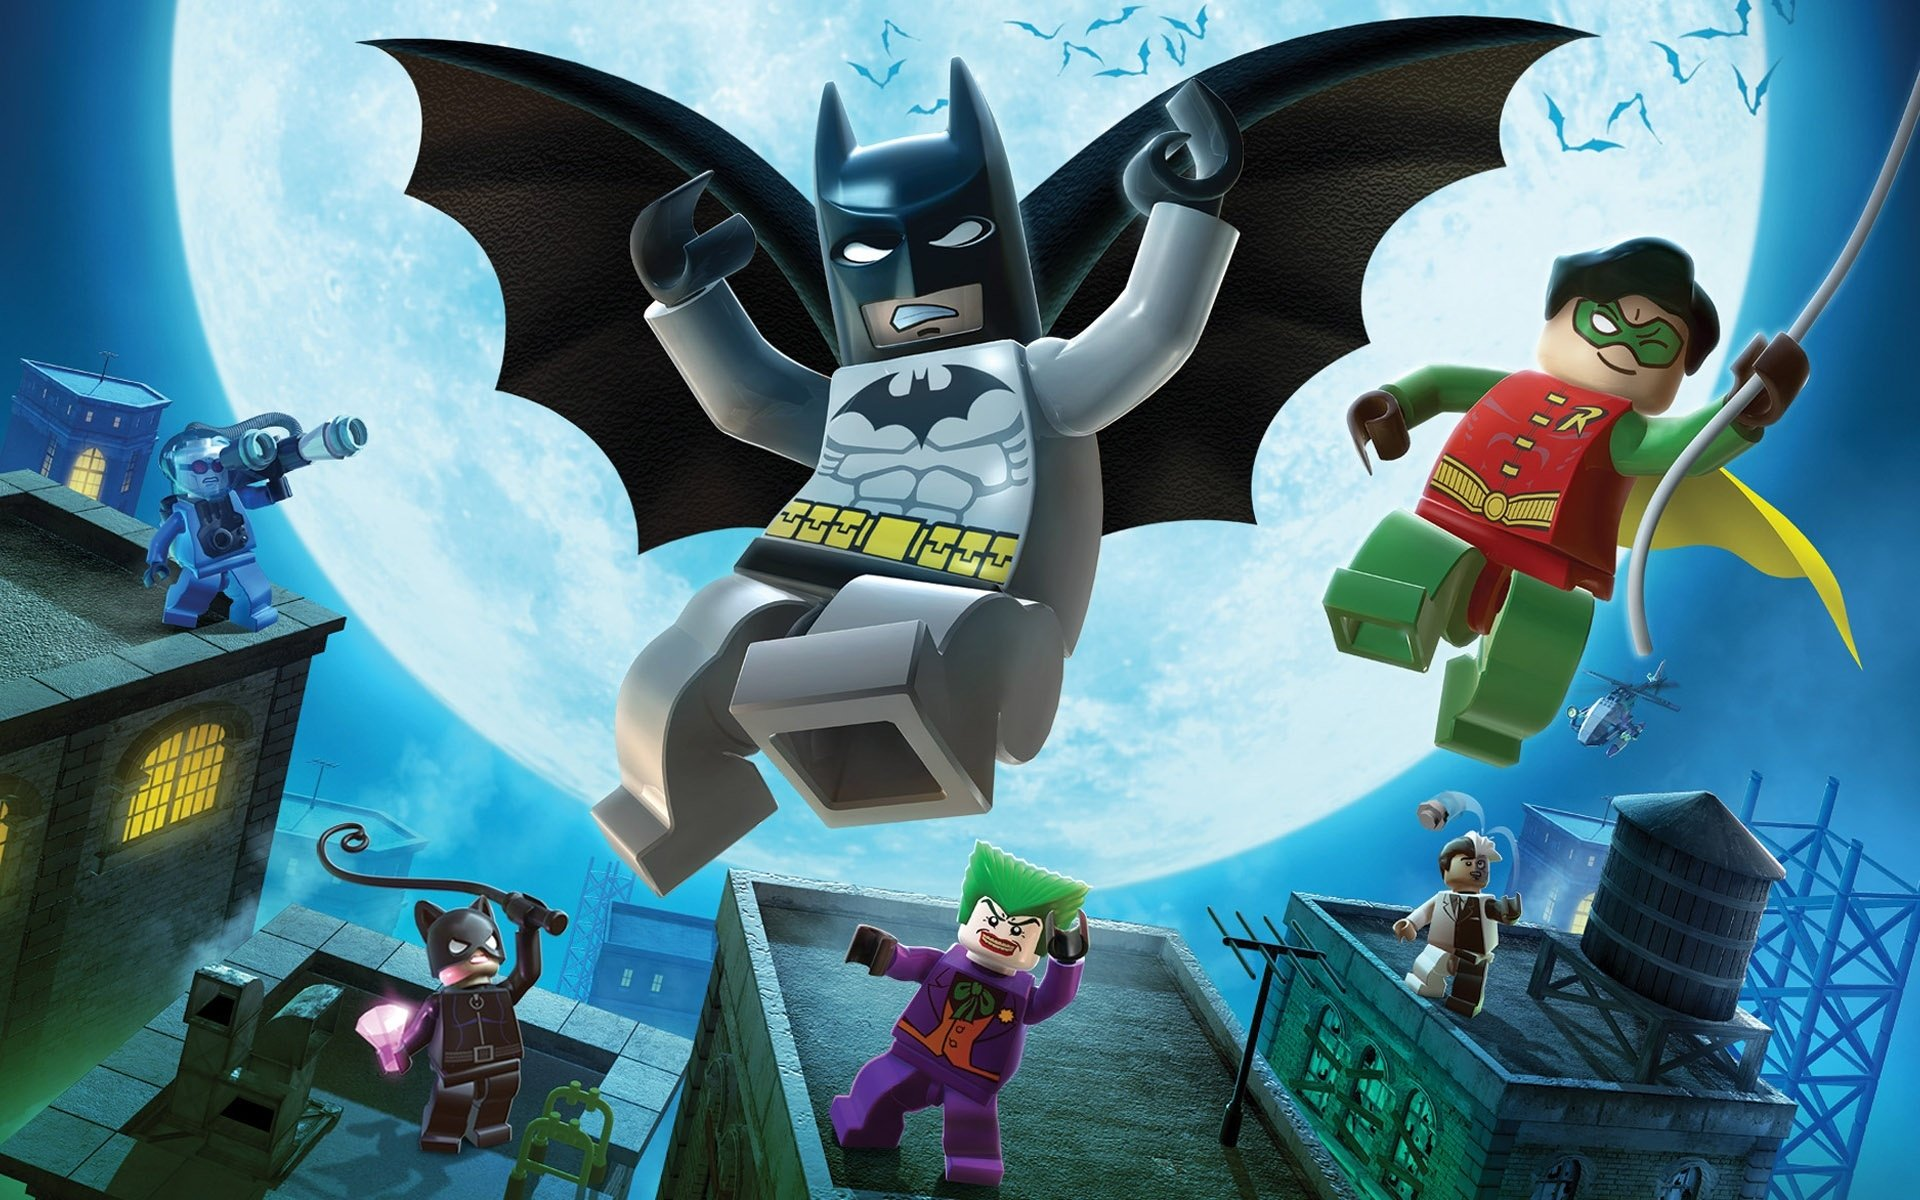 Video Game - LEGO Batman: The Videogame  Lego Batman Robin (DC Comics) Mr. Freeze (DC Comics) Joker Two-Face Catwoman Game Wallpaper